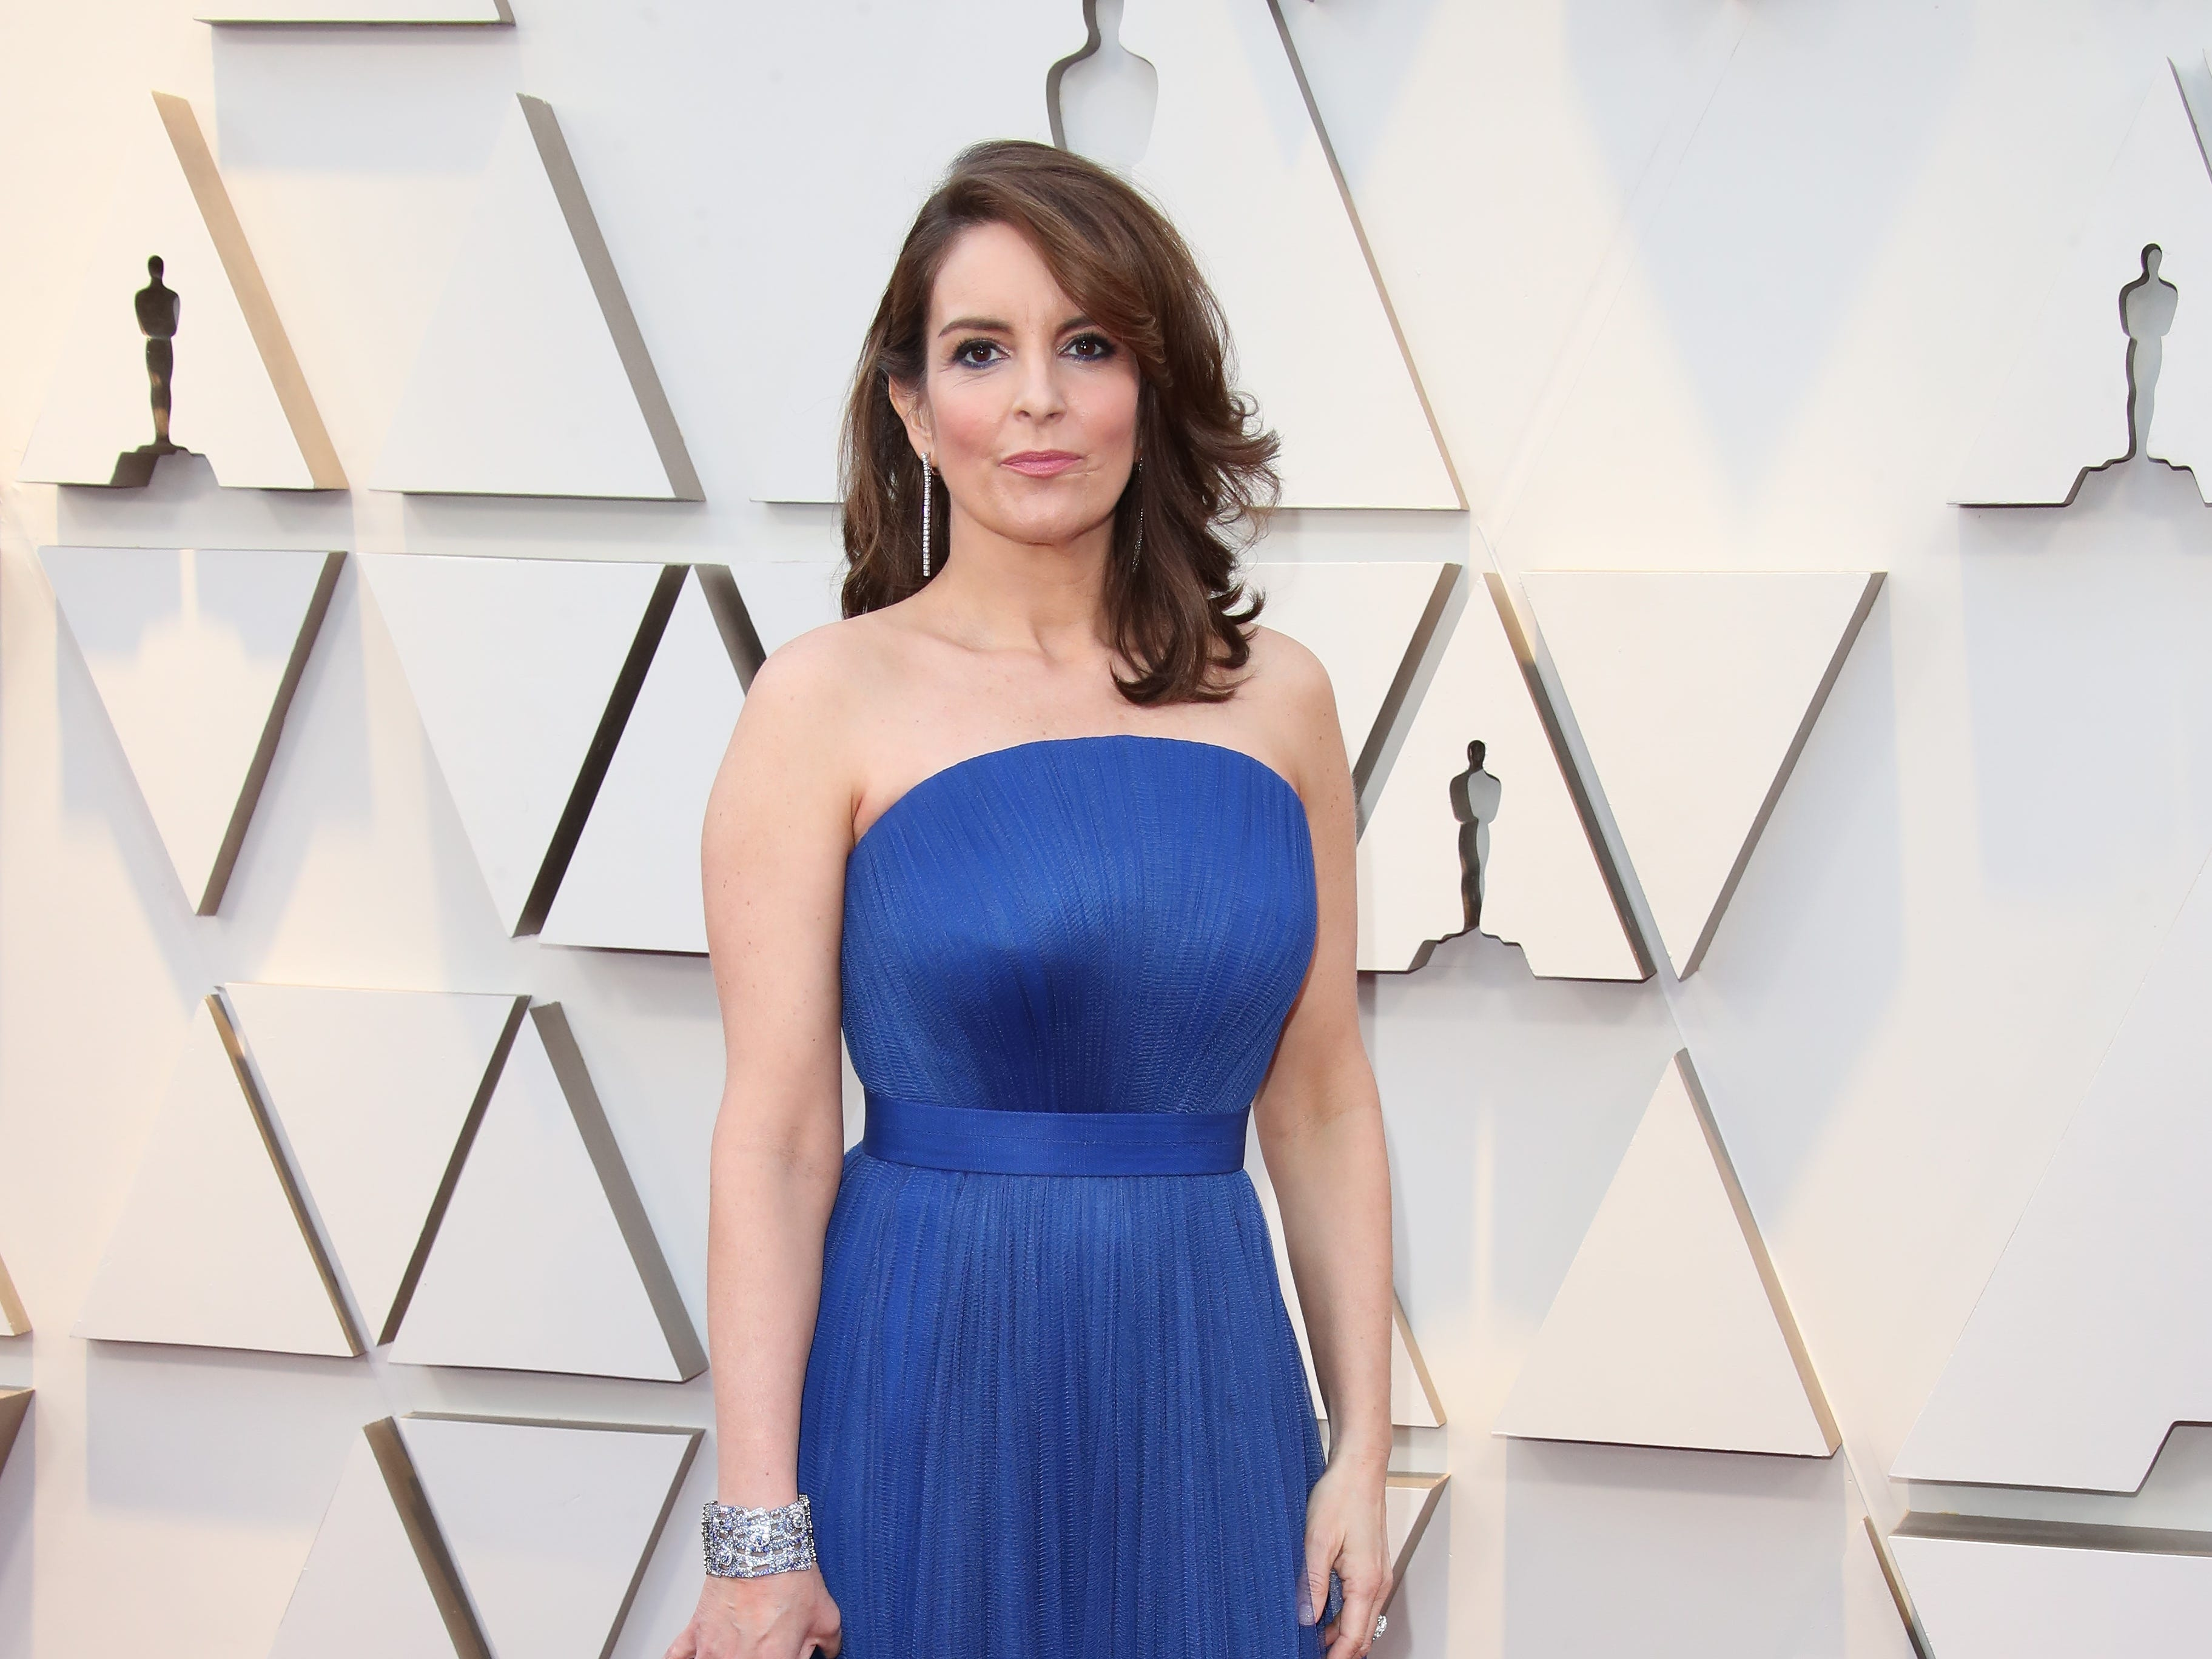 February 24, 2019; Los Angeles, CA, USA; Tina Fey arrives at the 91st Academy Awards at the Dolby Theatre. Mandatory Credit: Dan MacMedan-USA TODAY NETWORK (Via OlyDrop)